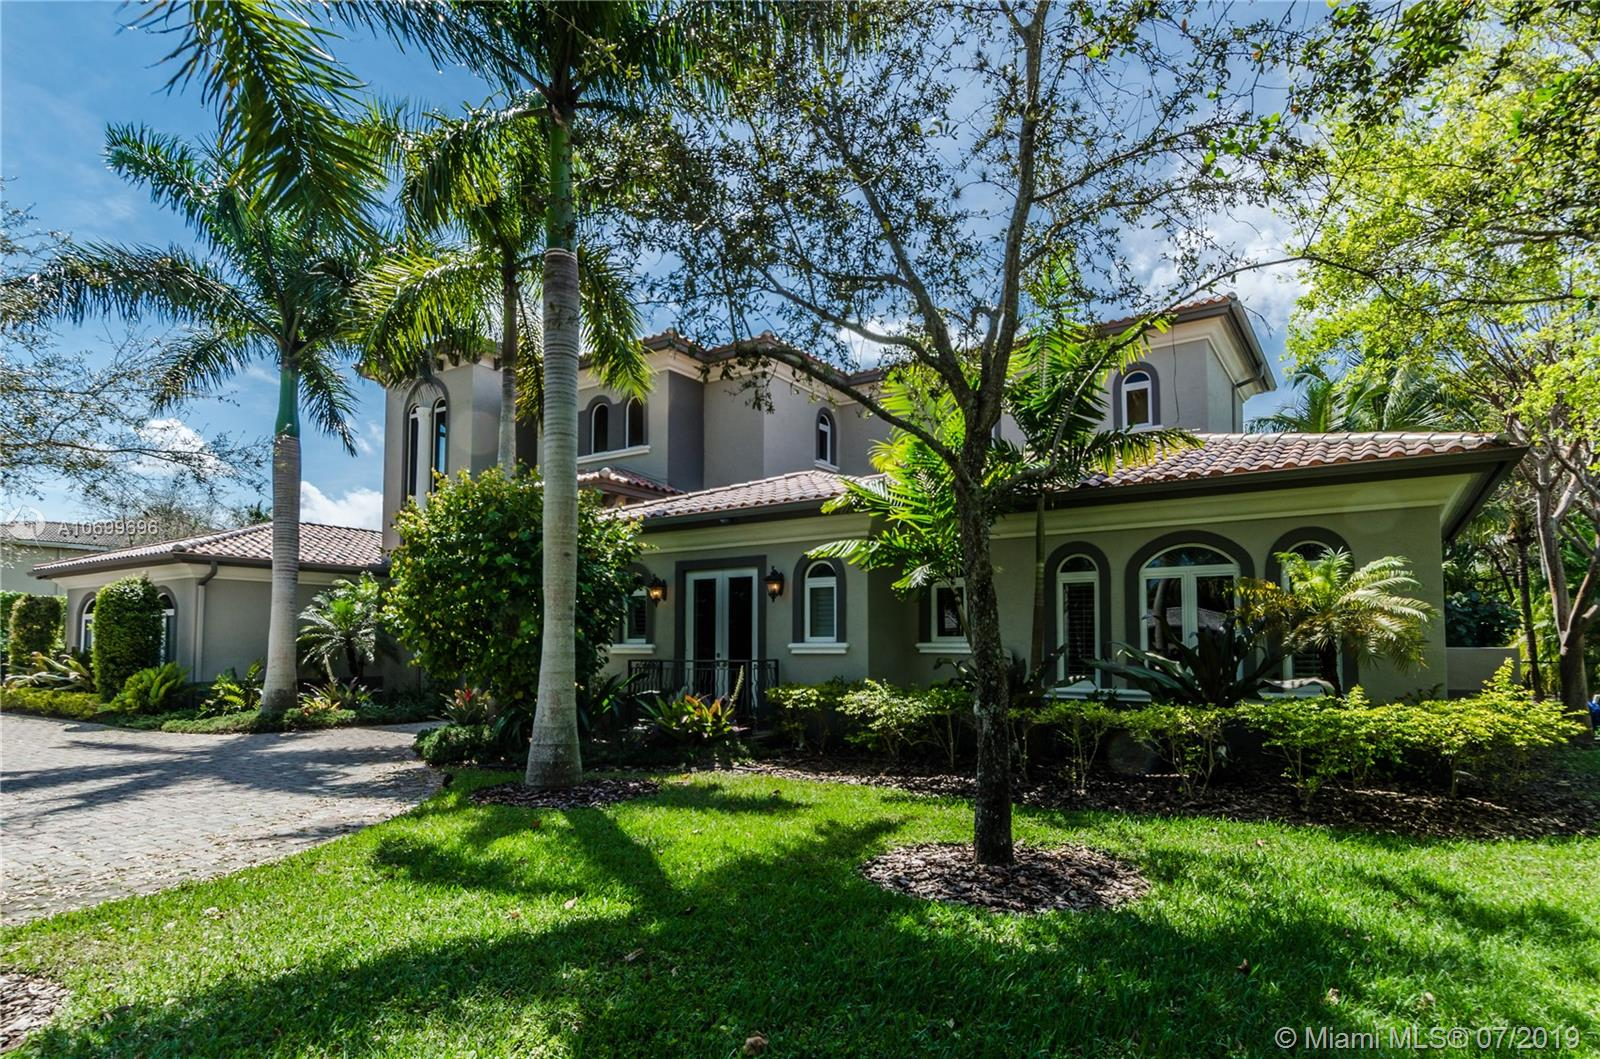 10300 SW 72nd Ave, Kendall, Florida